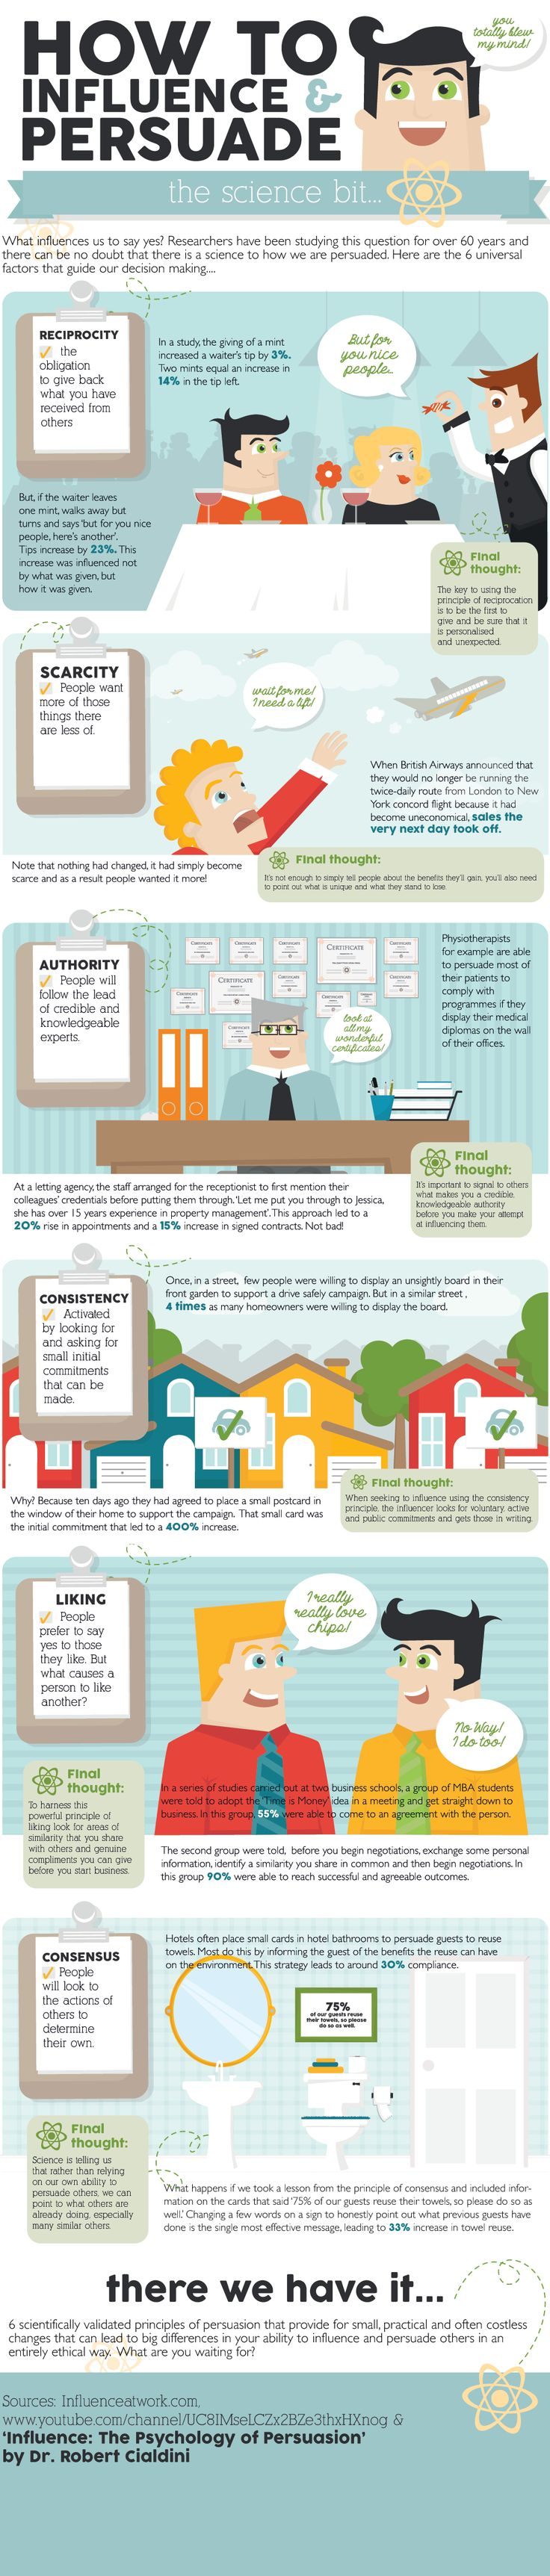 How To Influence and Persuade #infographic #Sales #HowTo #Marketing